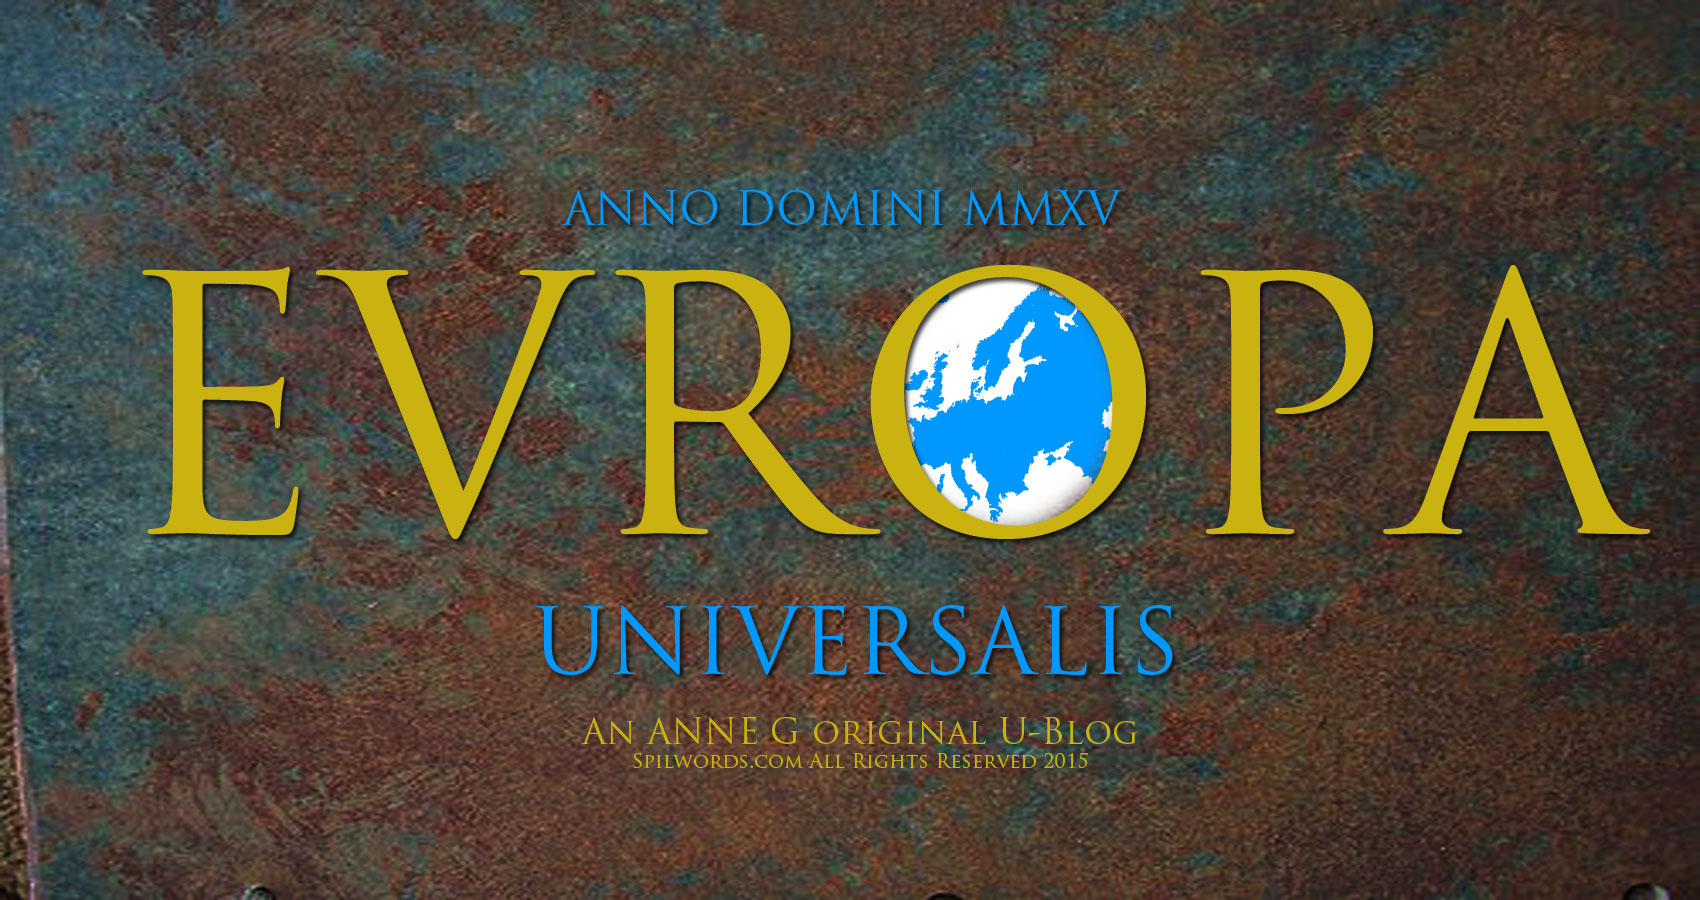 Europa Universalis a spillwords Original Anne G U-Blog Greeks dreamt it, Romans built it